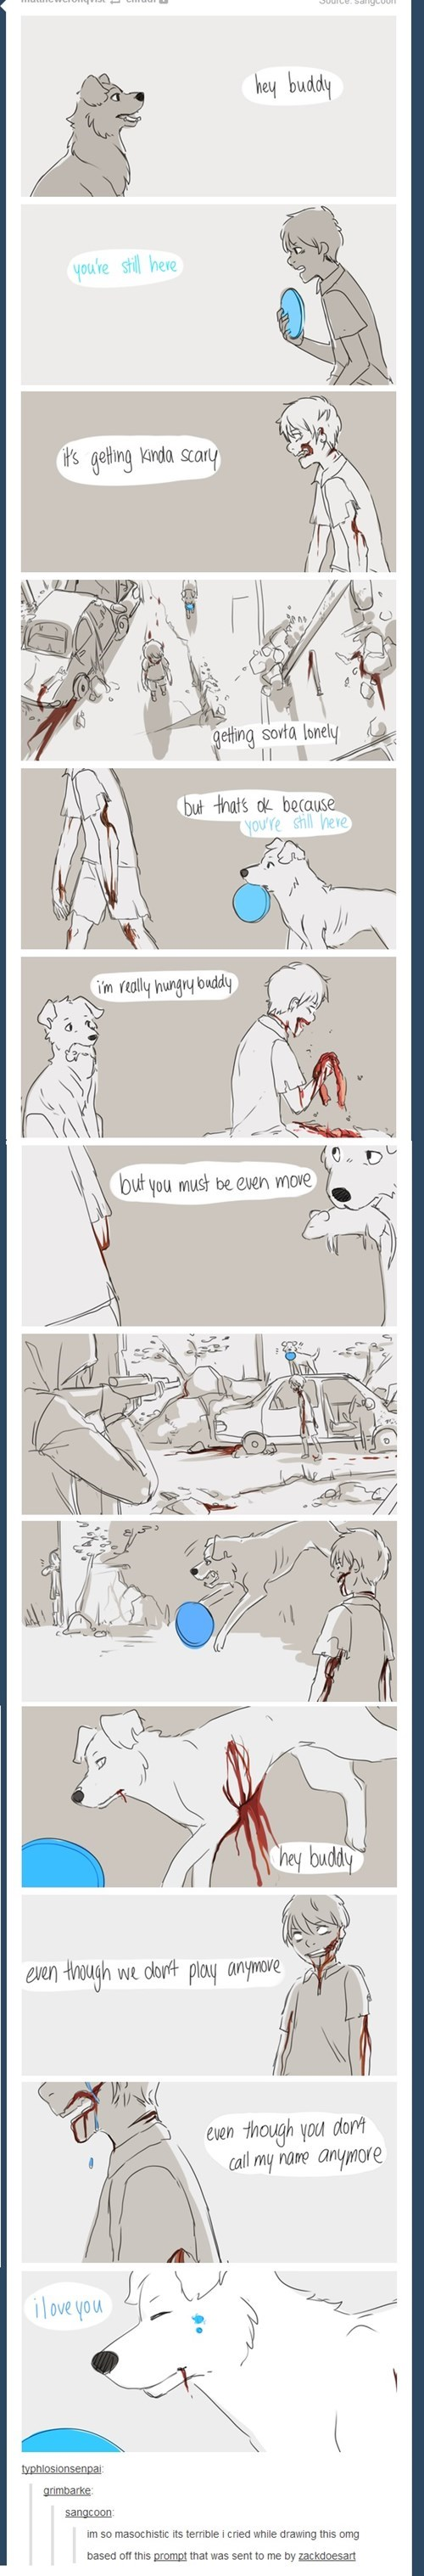 dogs,zombie,zombie apocalypse,the feels,web comics